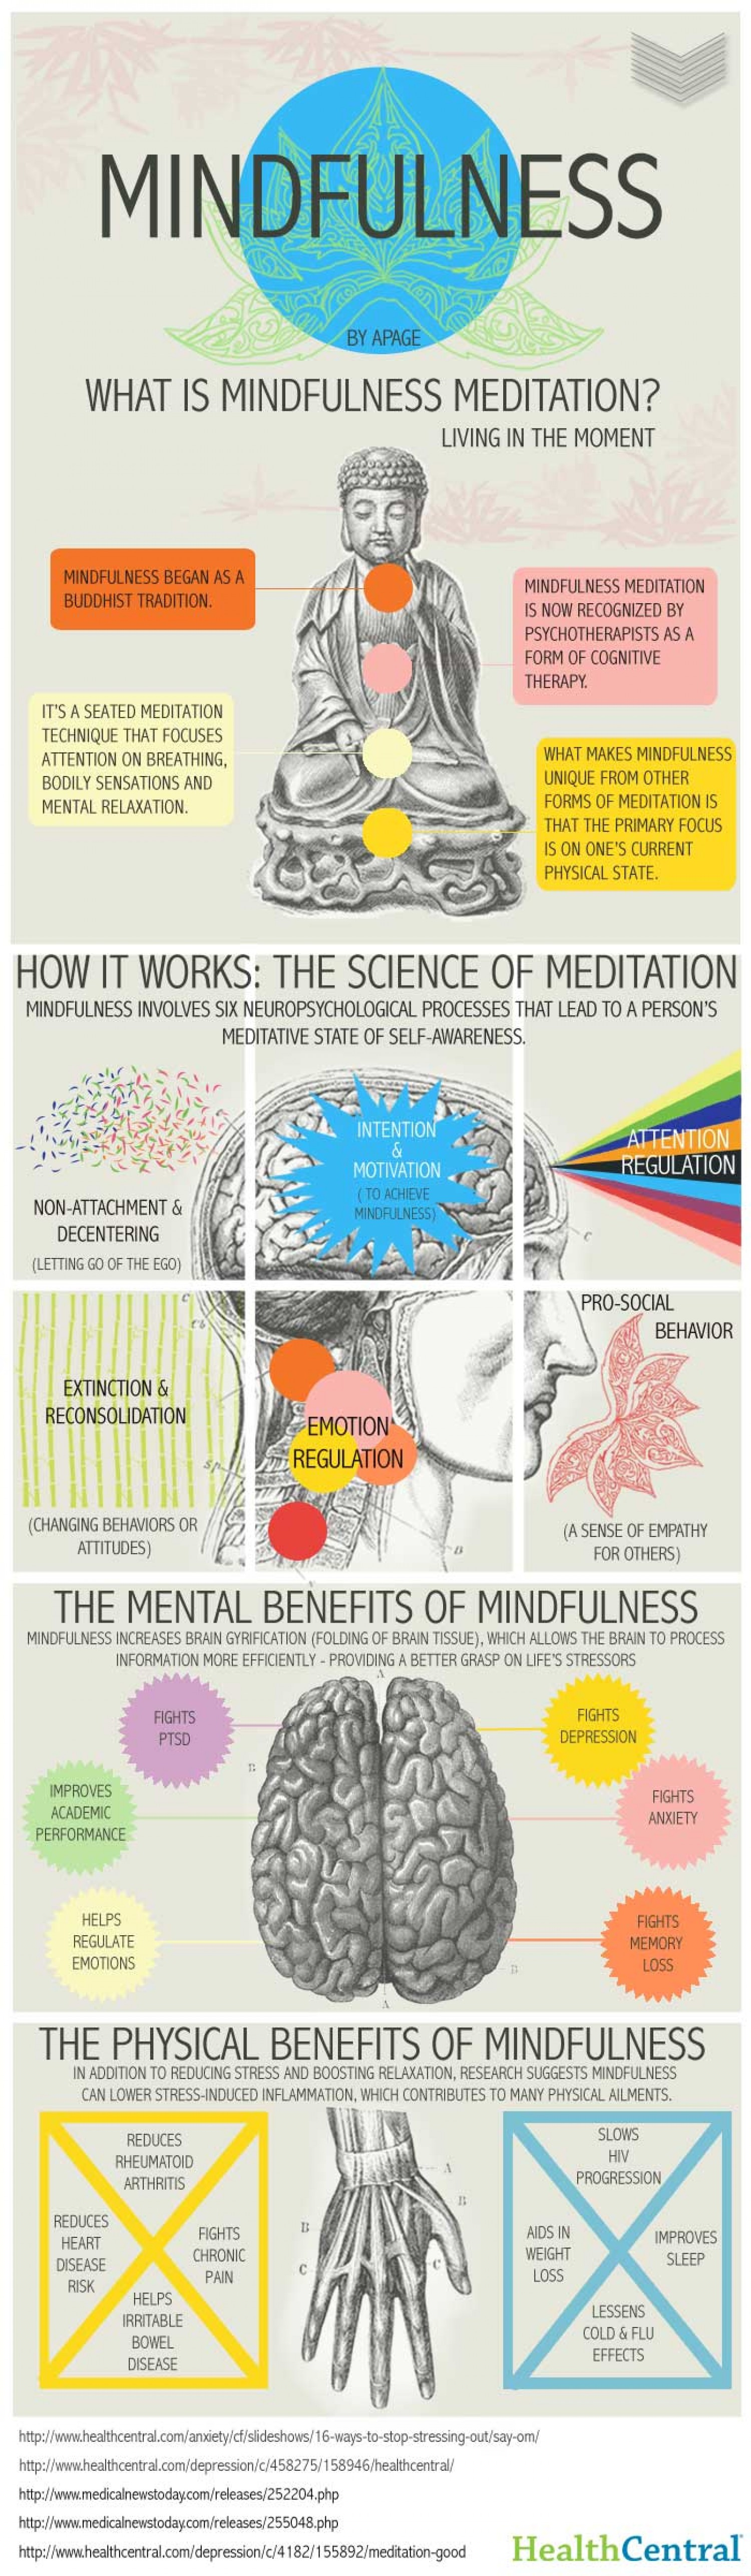 VISUAL | What is mindfulness meditation? Benefits & How it works.